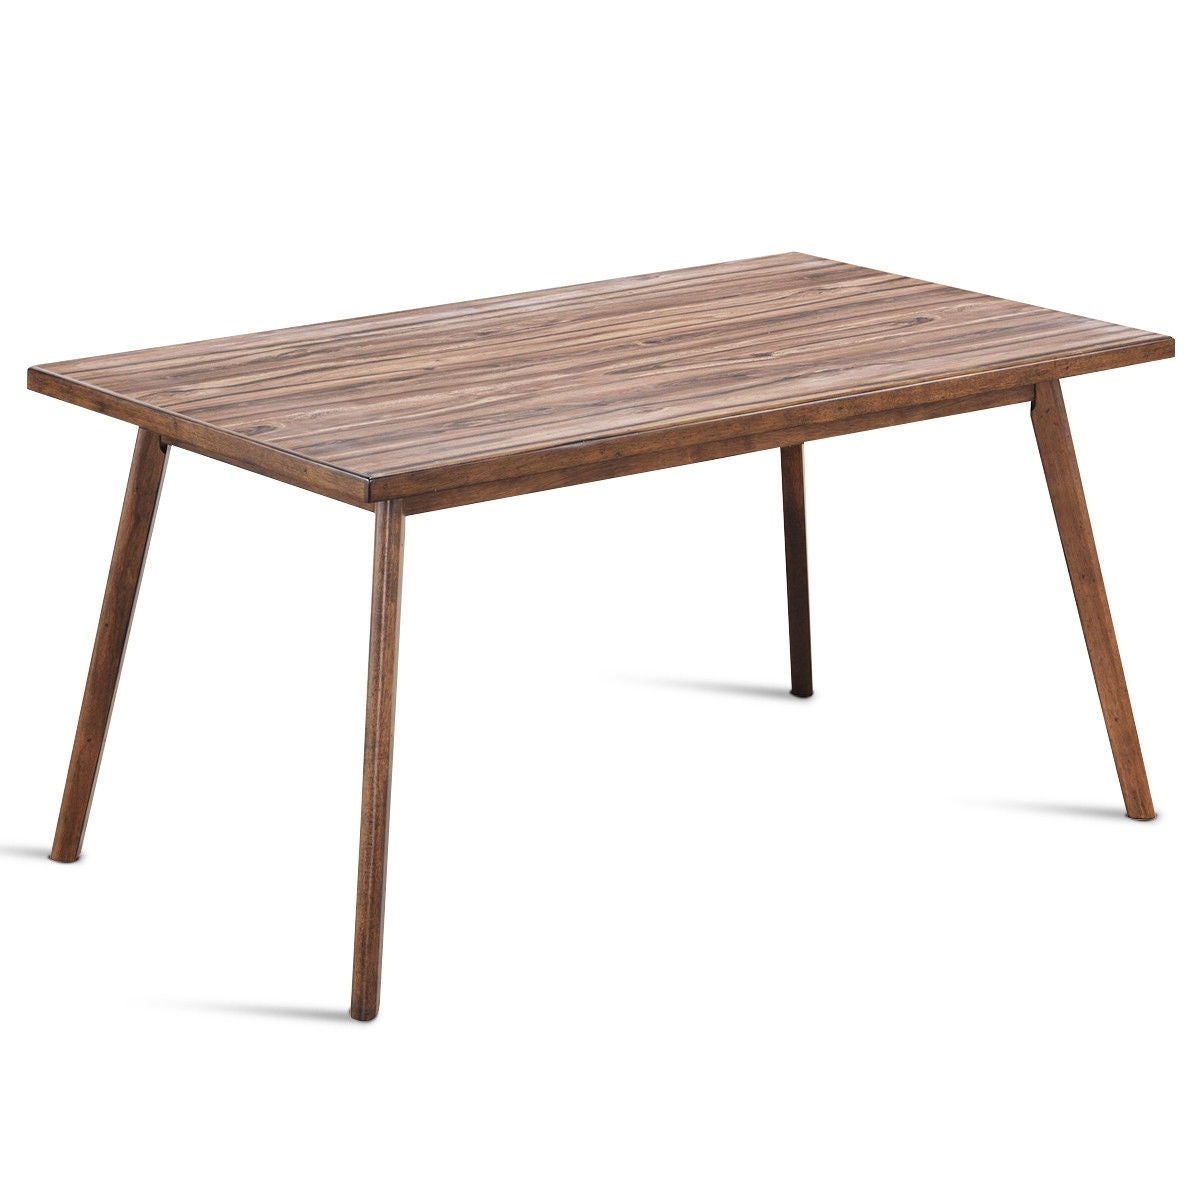 Widely Used Costway Mid Century Dining Table Rectangular Top Wood Legs Kitchen Dining Room Furniture – As Pic In Mid Century Rectangular Top Dining Tables With Wood Legs (View 21 of 30)